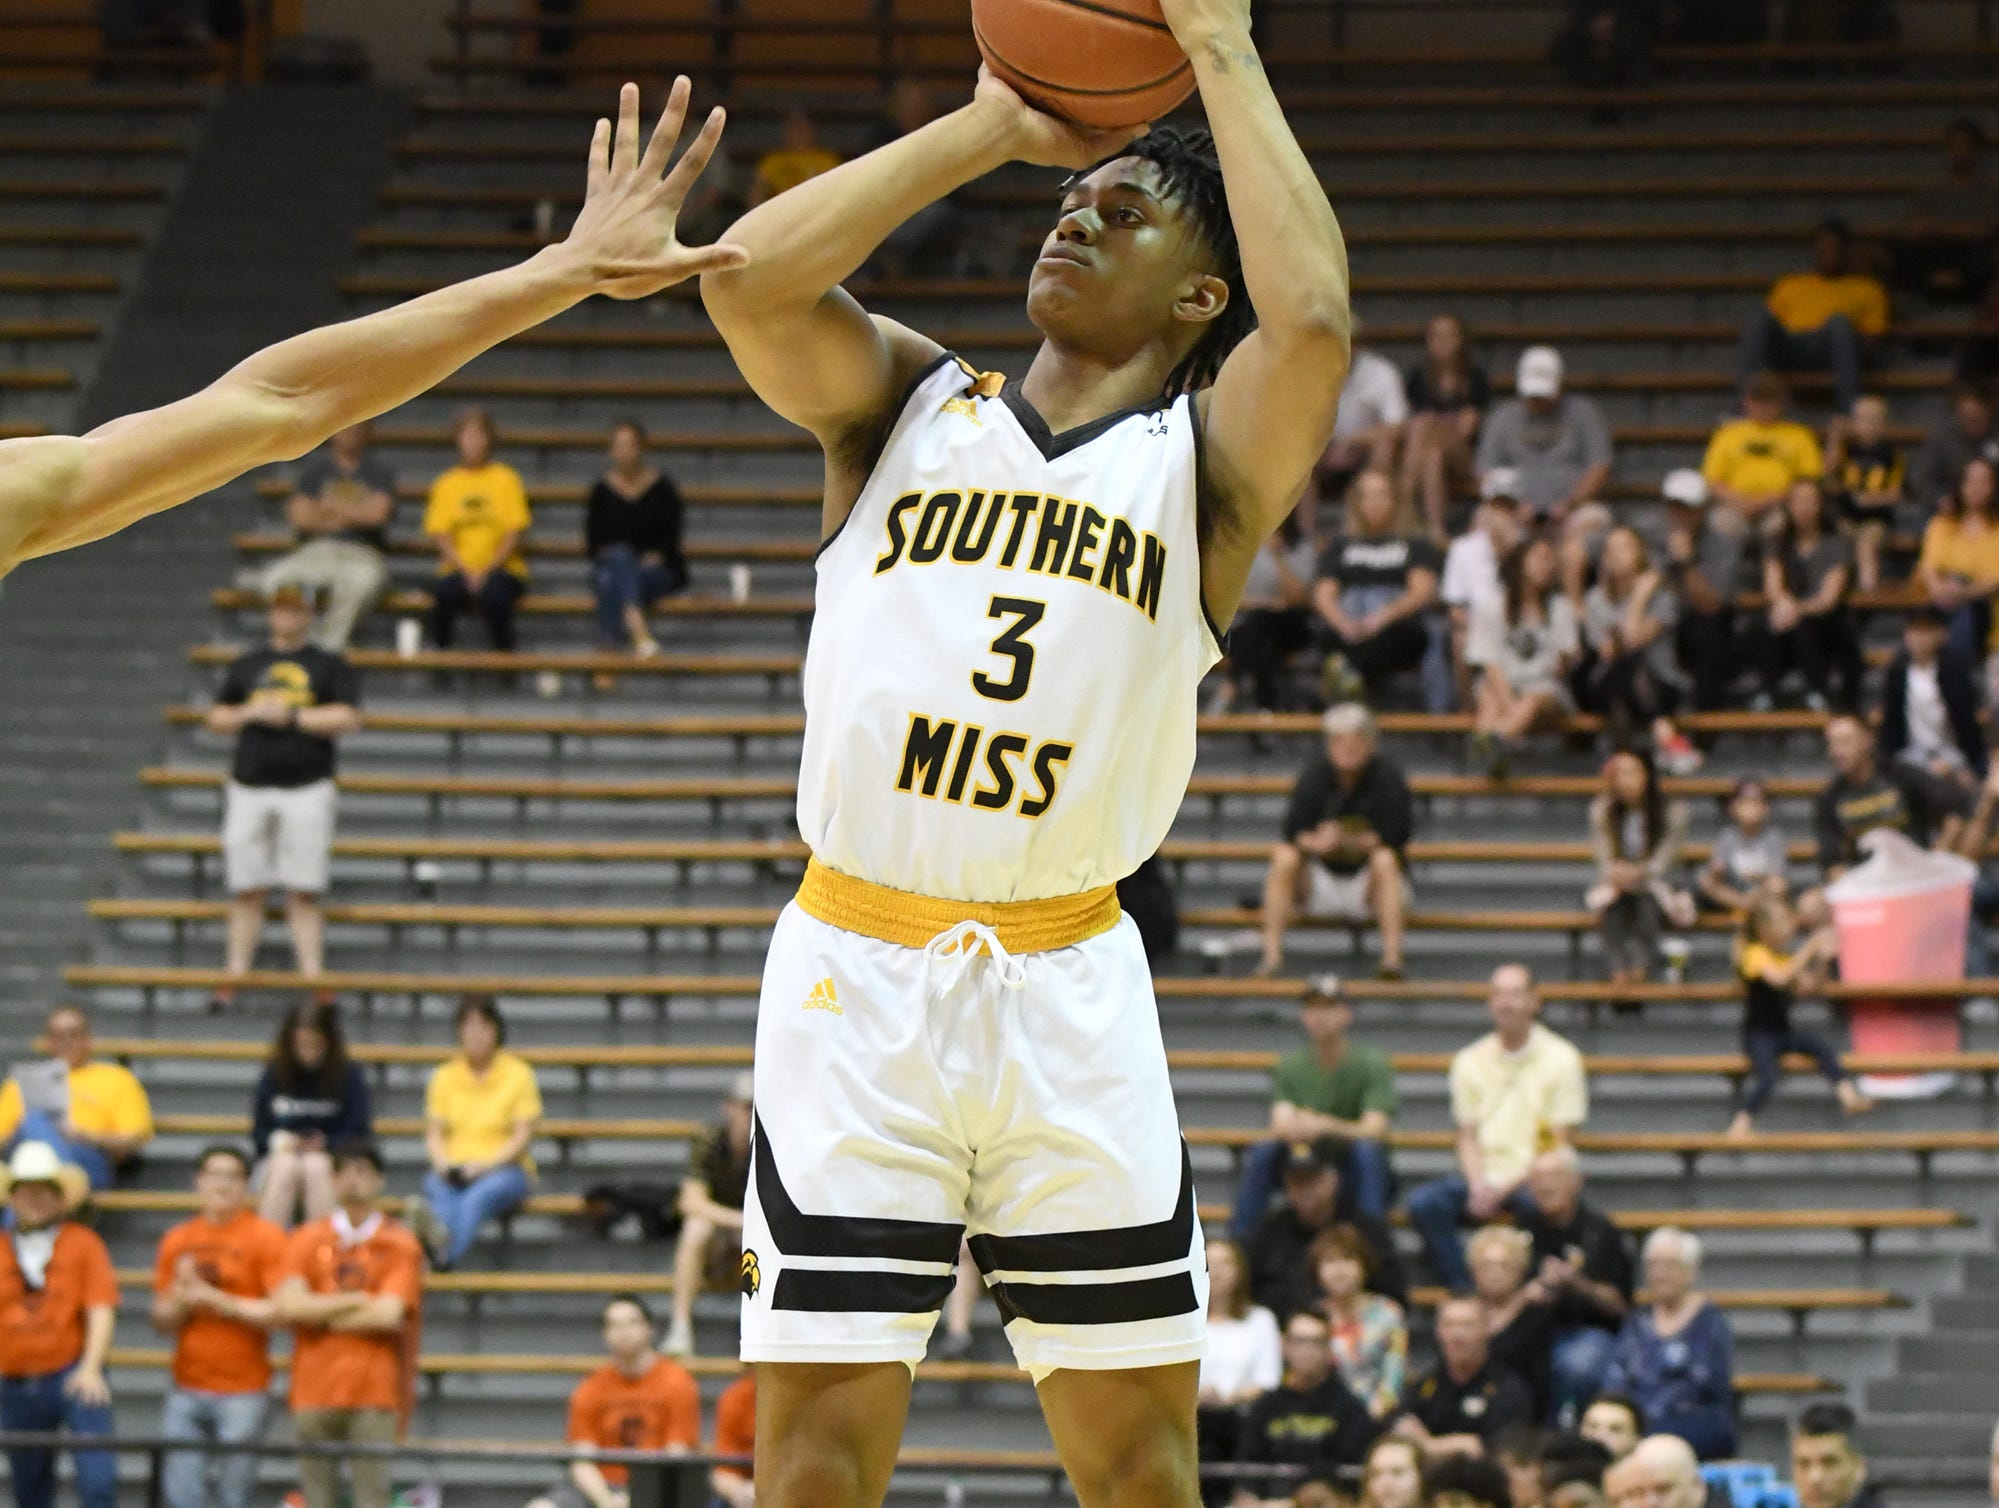 Southern Miss guard Gabe Watson shoots for the basket  in a game against UTSA in Reed Green Coliseum on Saturday, March 9, 2019.